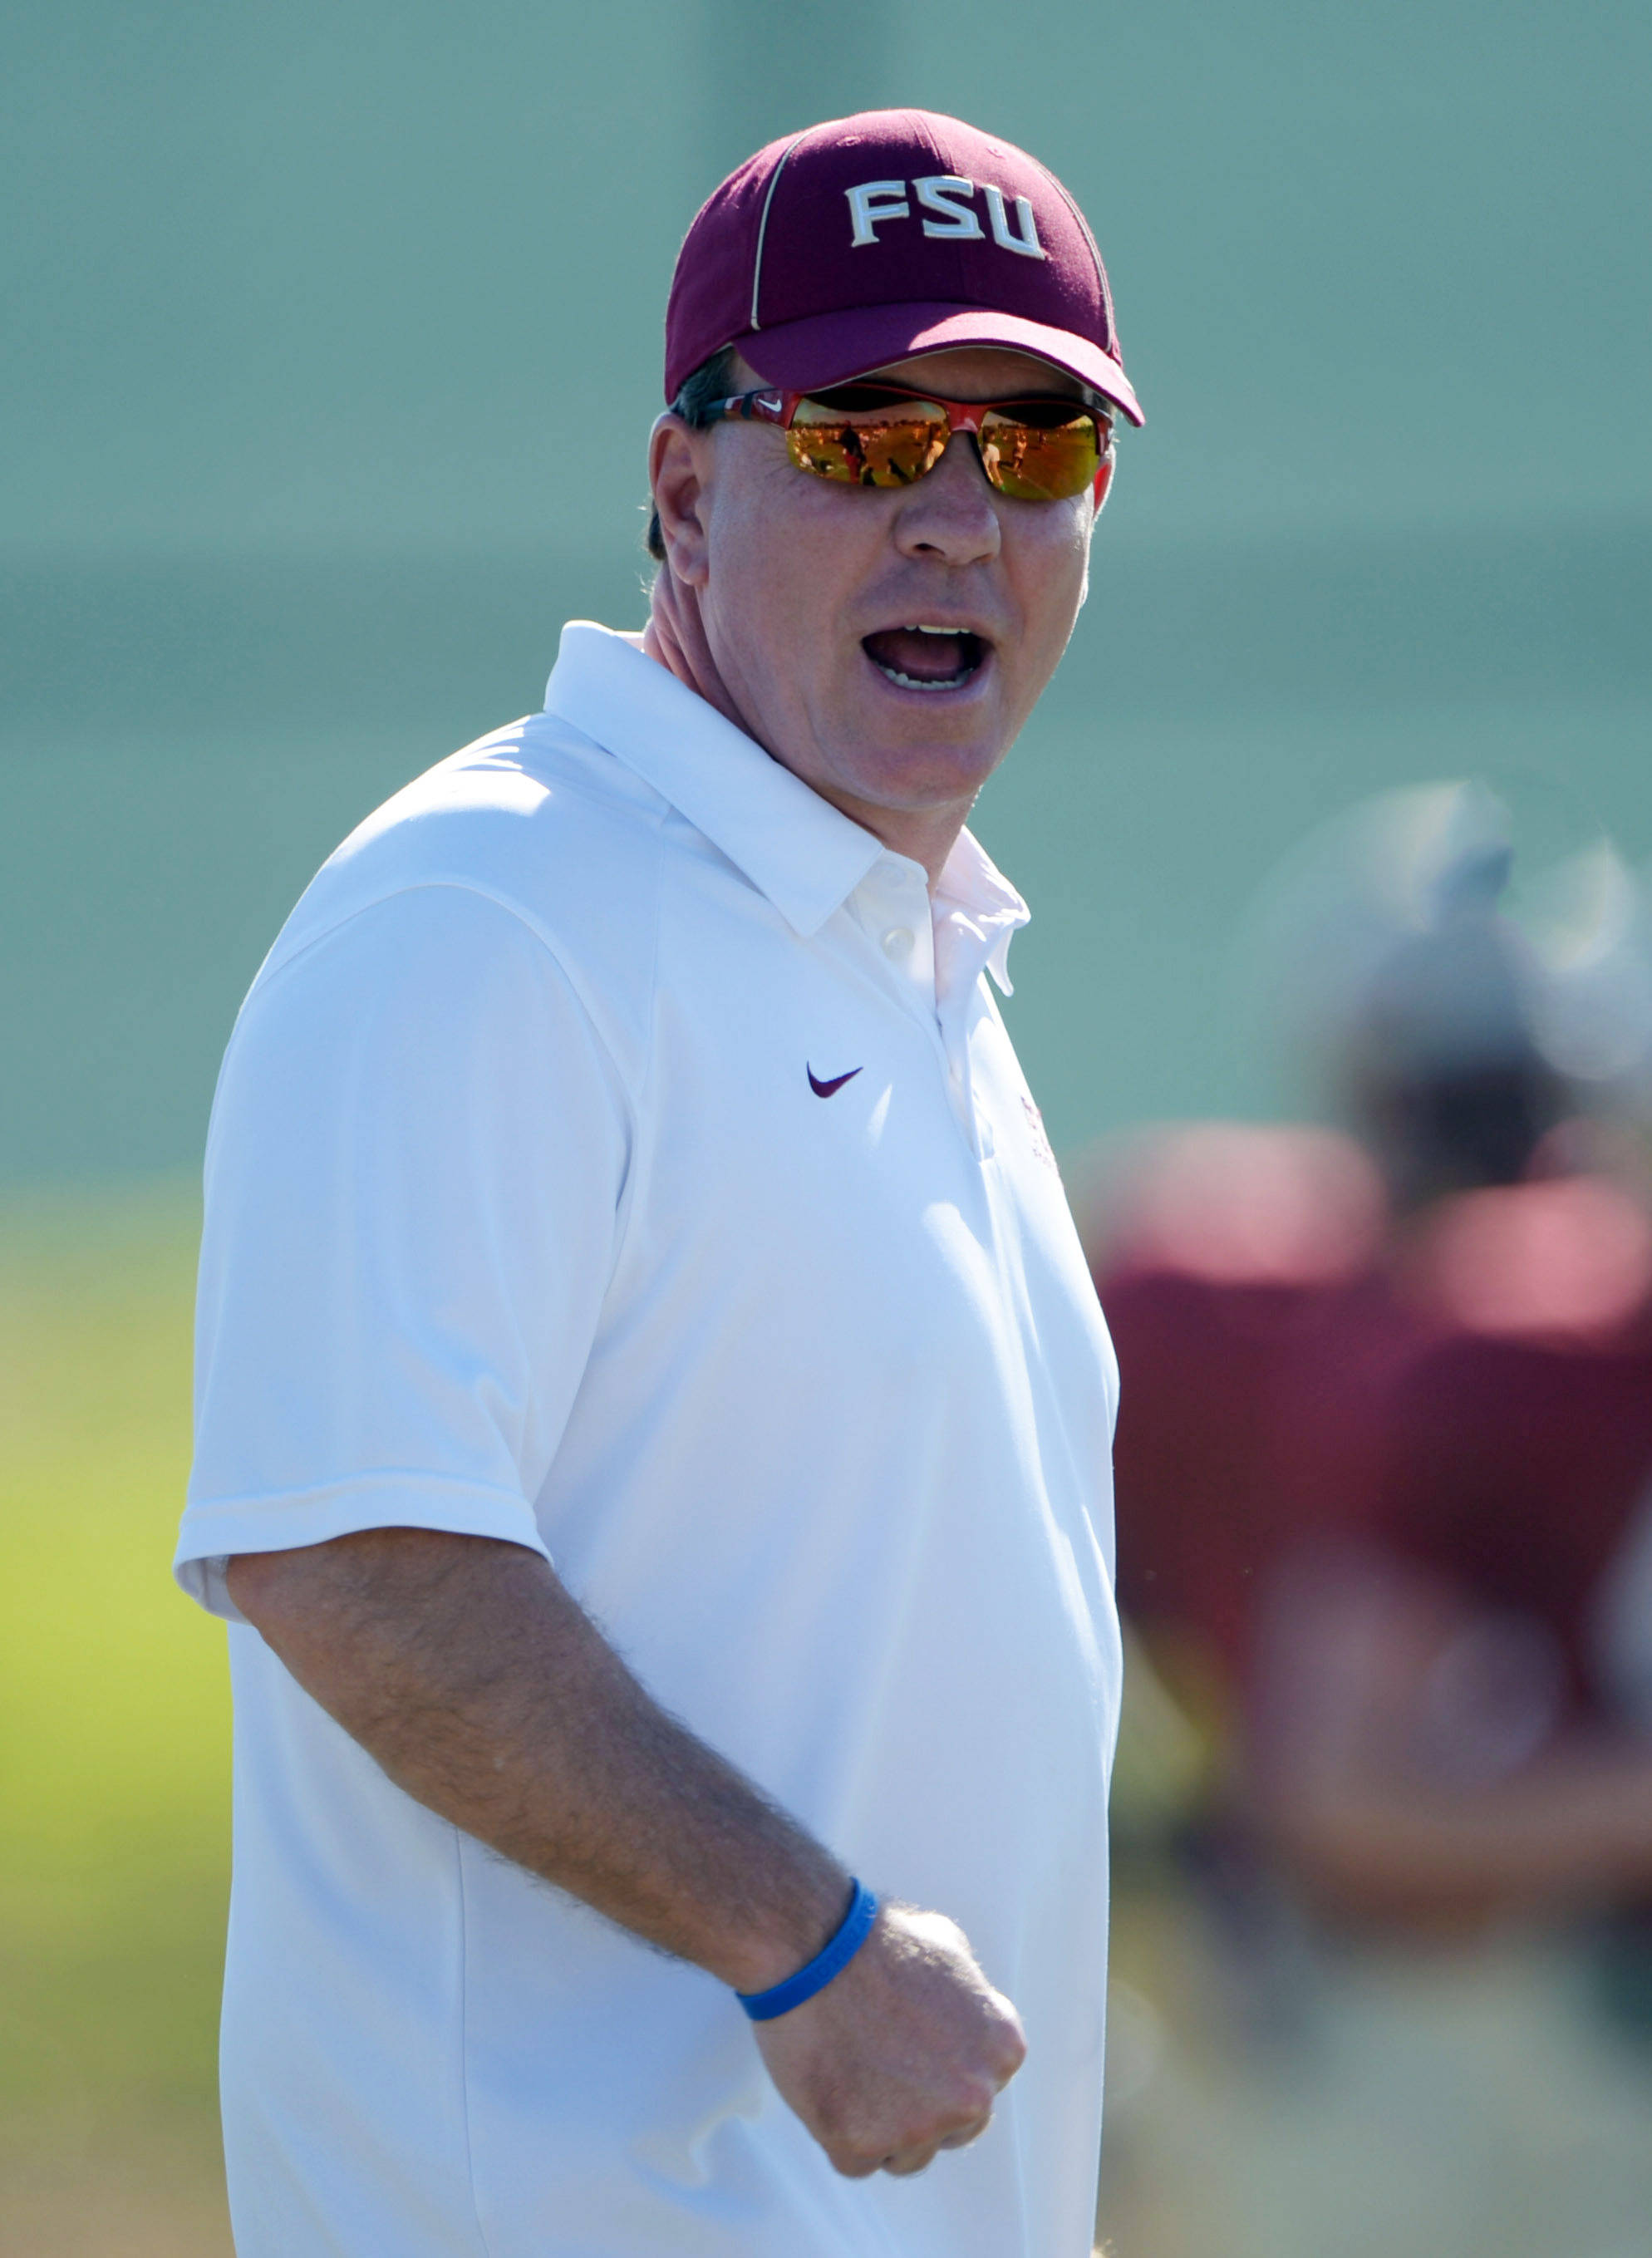 Florida State Seminoles coach Jimbo Fisher at practice for the 2014 BCS National Championship against the Auburn Tigers. Mandatory Credit: Kirby Lee-USA TODAY Sports